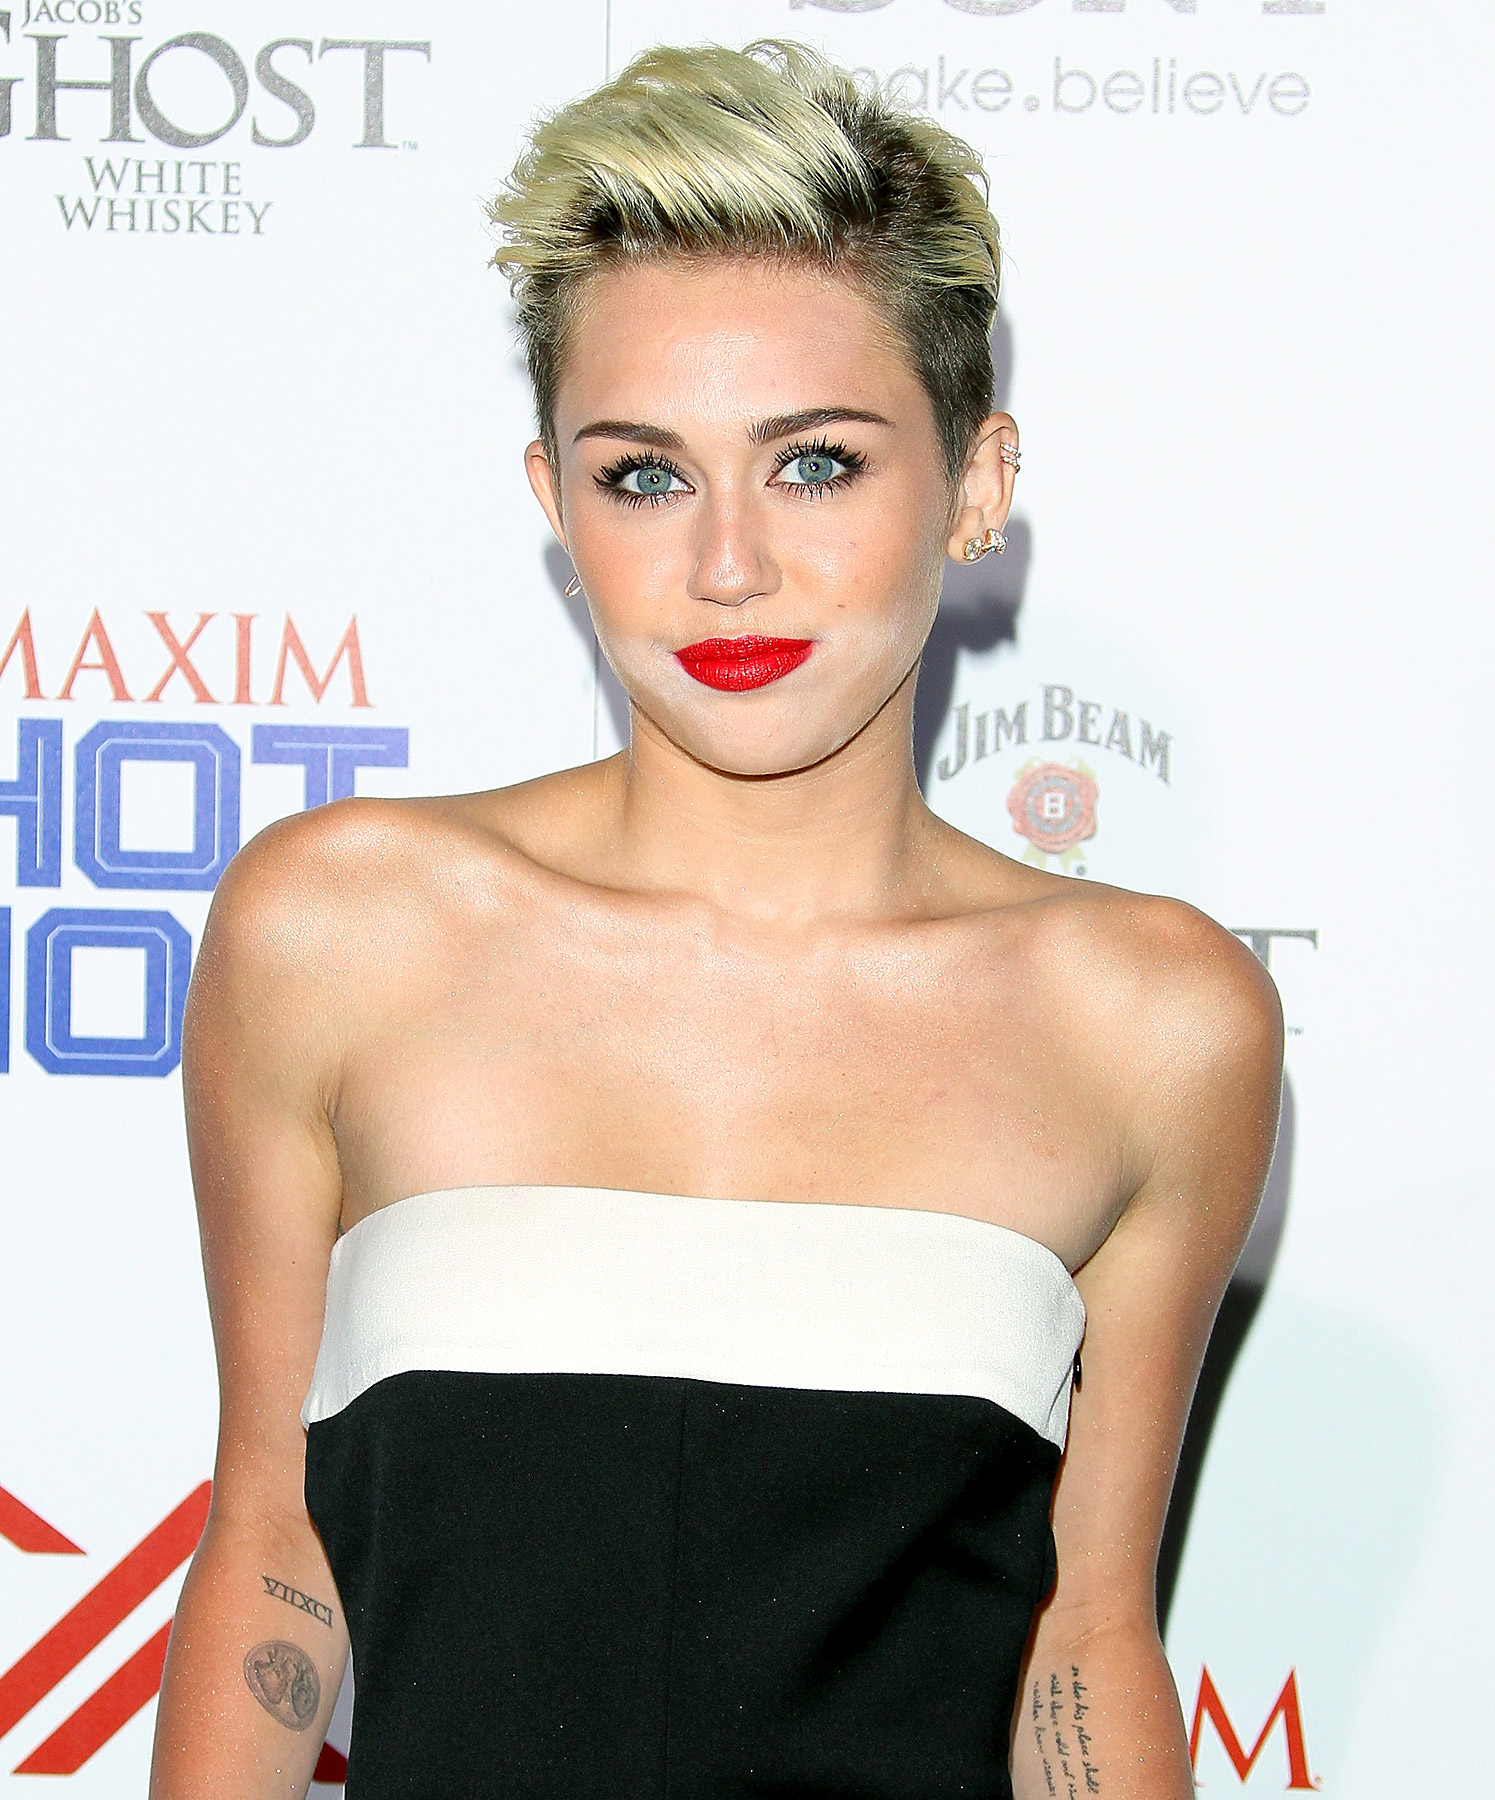 Singer Miley Cyrus - age: 24